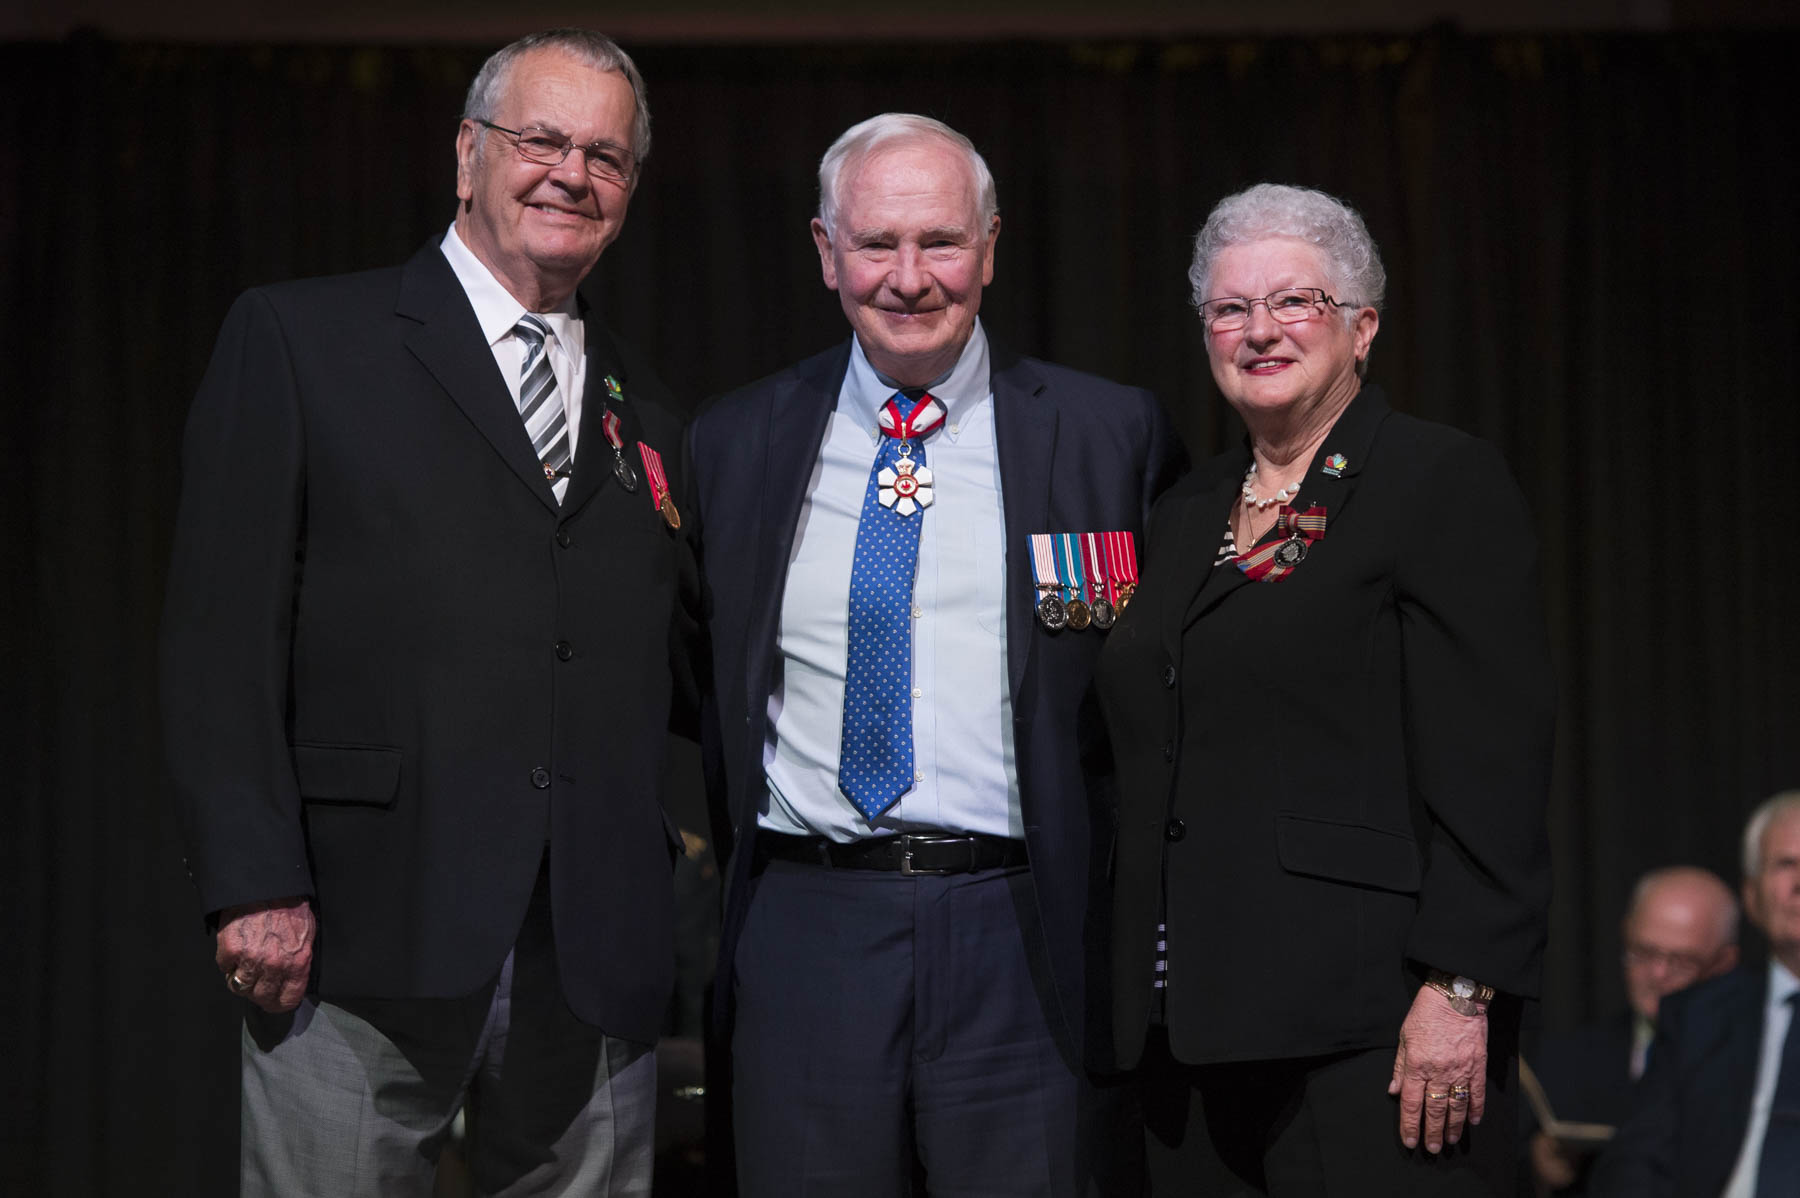 His Excellency presented the Sovereign's Medal for Volunteers to Jacques (Chuck) Lavoie and Norma Jeanne Lavoie who, since 2005, have had a positive influence on families in the Moncton area. They have promoted cancer awareness through the LIVESTRONG Foundation and the Canadian Cancer Society's Relay for Life, and helped citizens in need through the Vestiaire St. Joseph Food Bank.